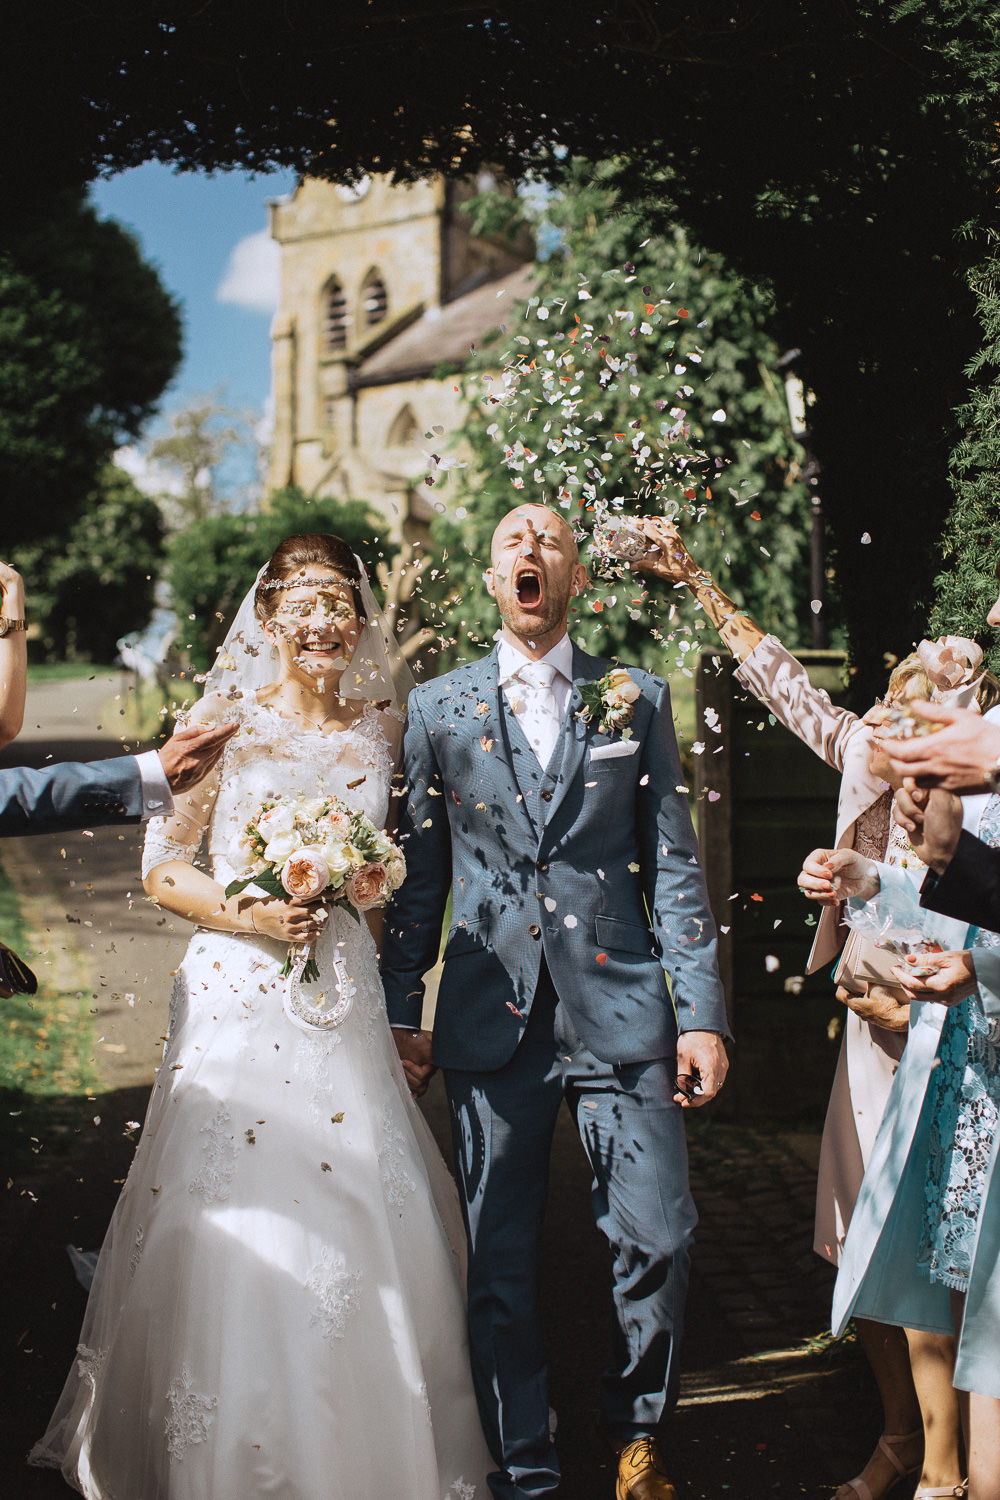 Scout Hut Wedding from Fox & Bear Photography - confetti run with the groom trying to catch confetti with his mouth